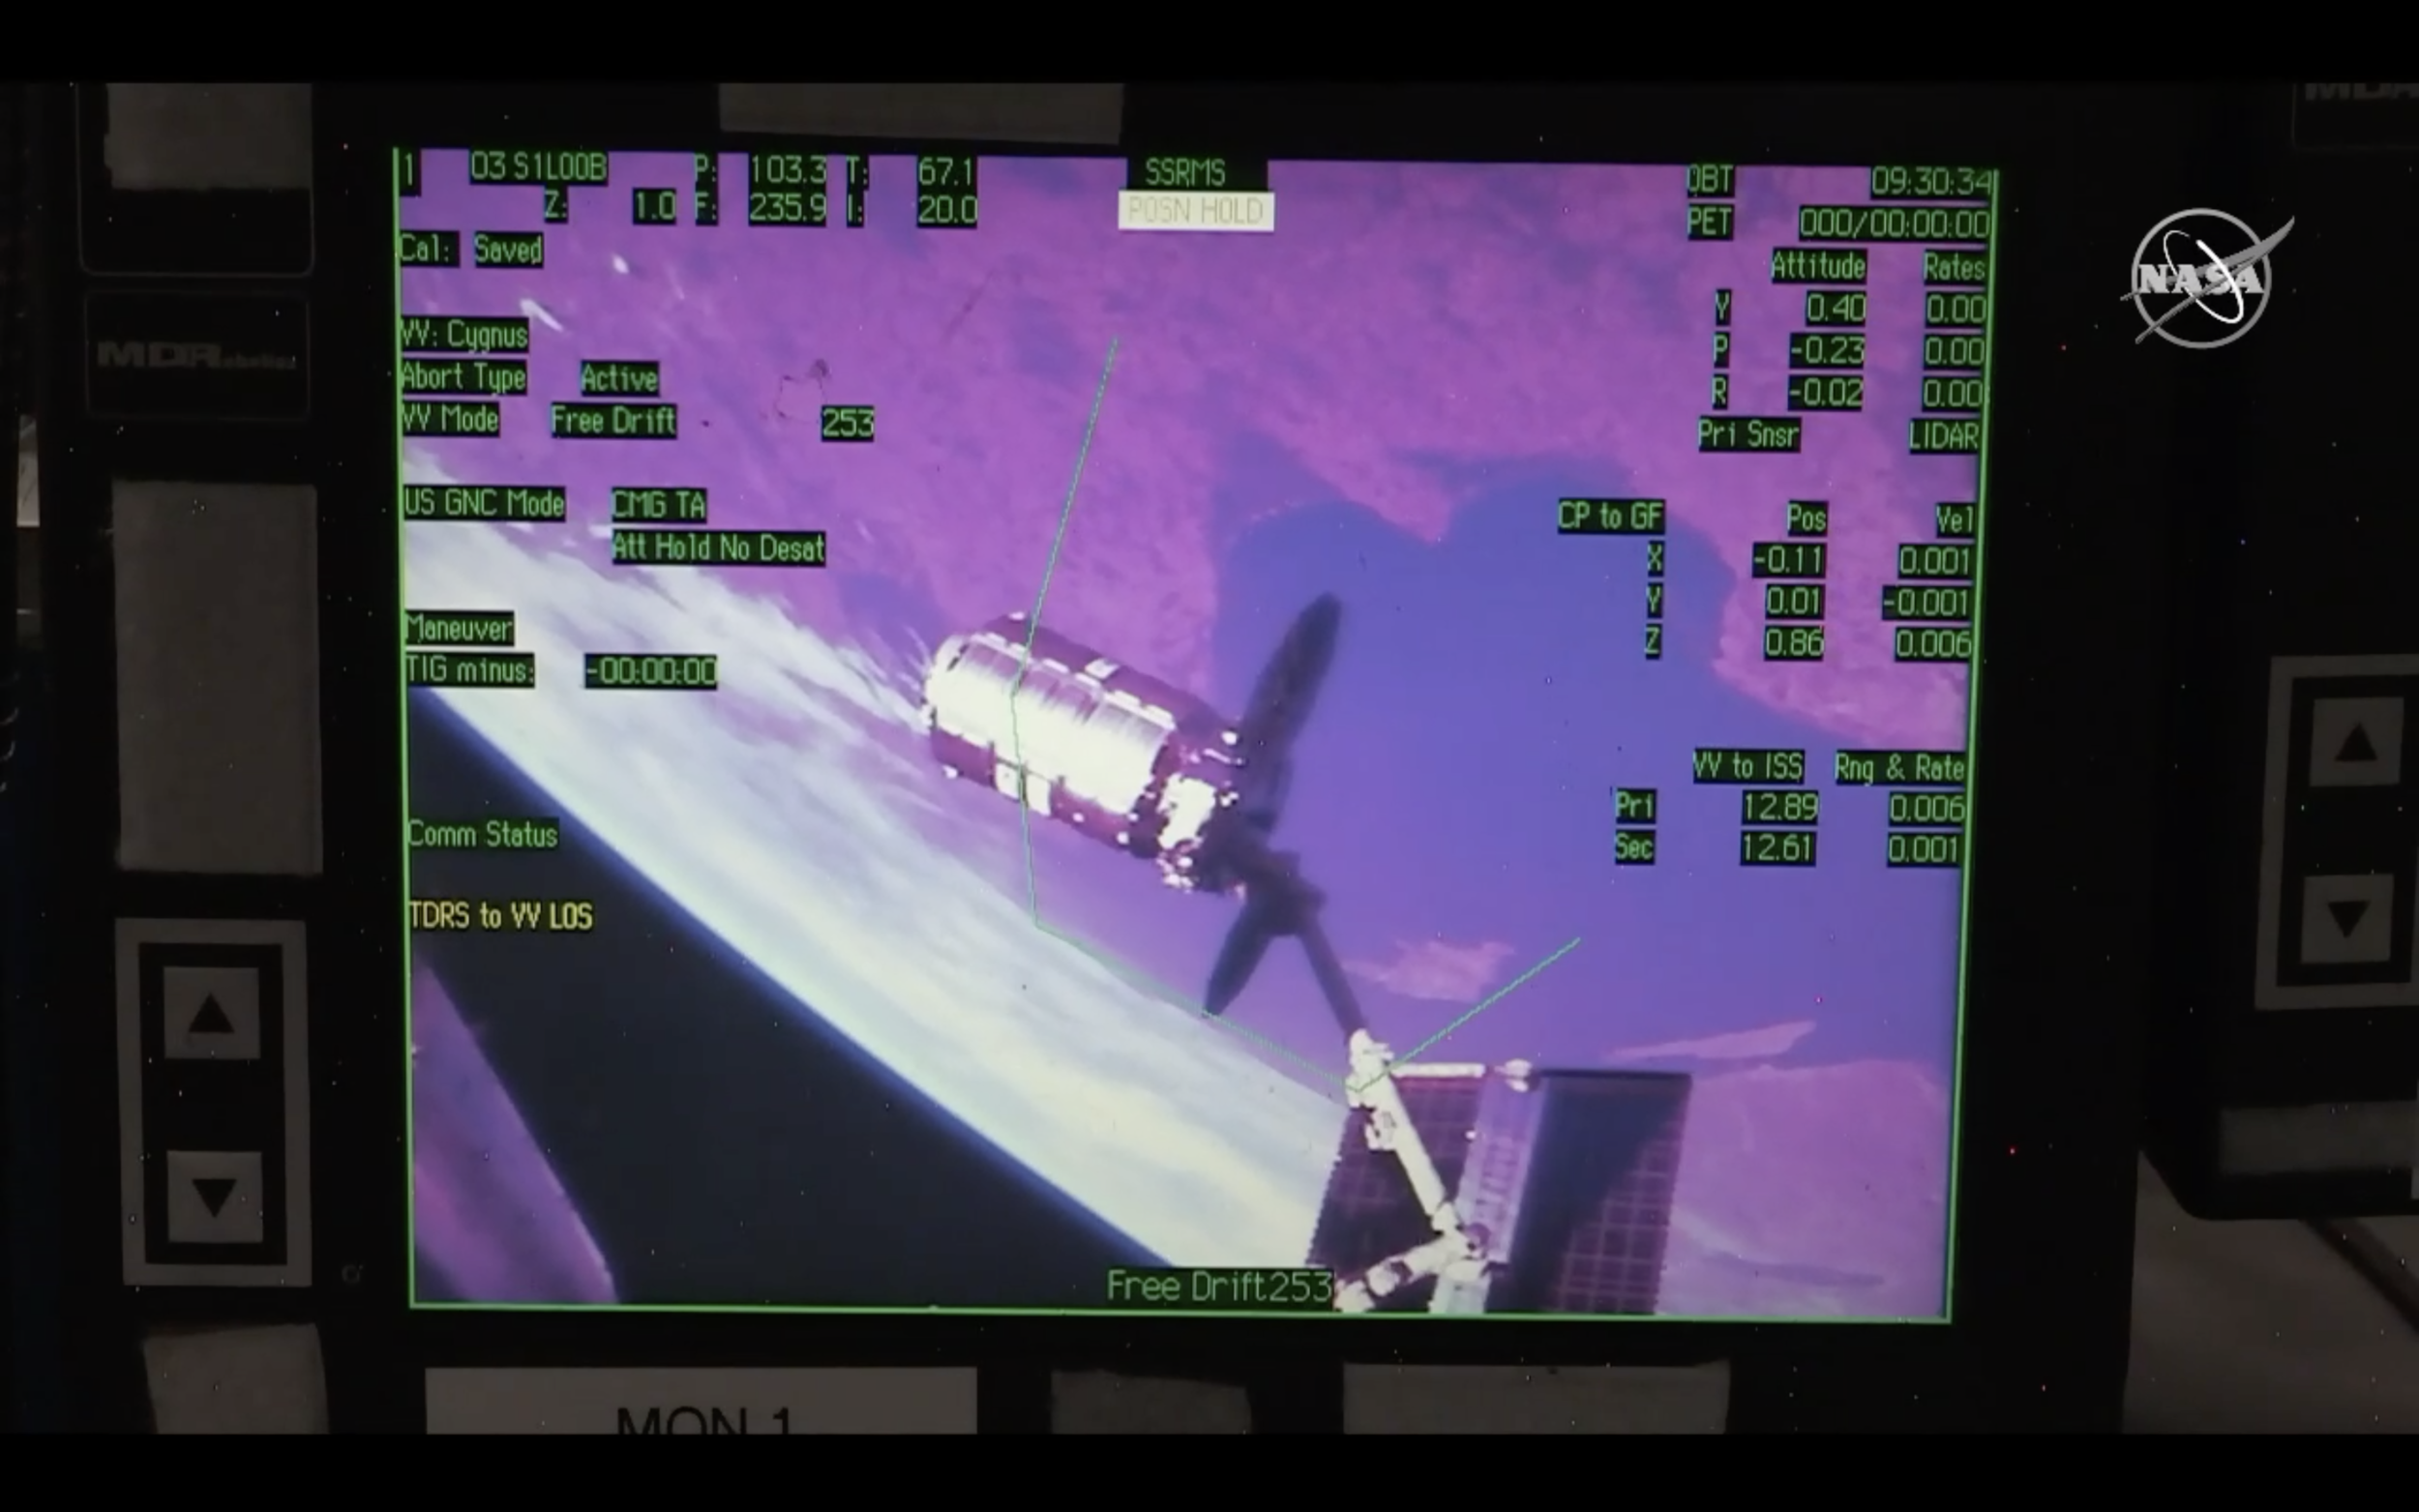 NG-11 arrives at the ISS with a smooth capture at 5:30am EDT, seen on the station's onboard monitors. (Image: NASA TV)